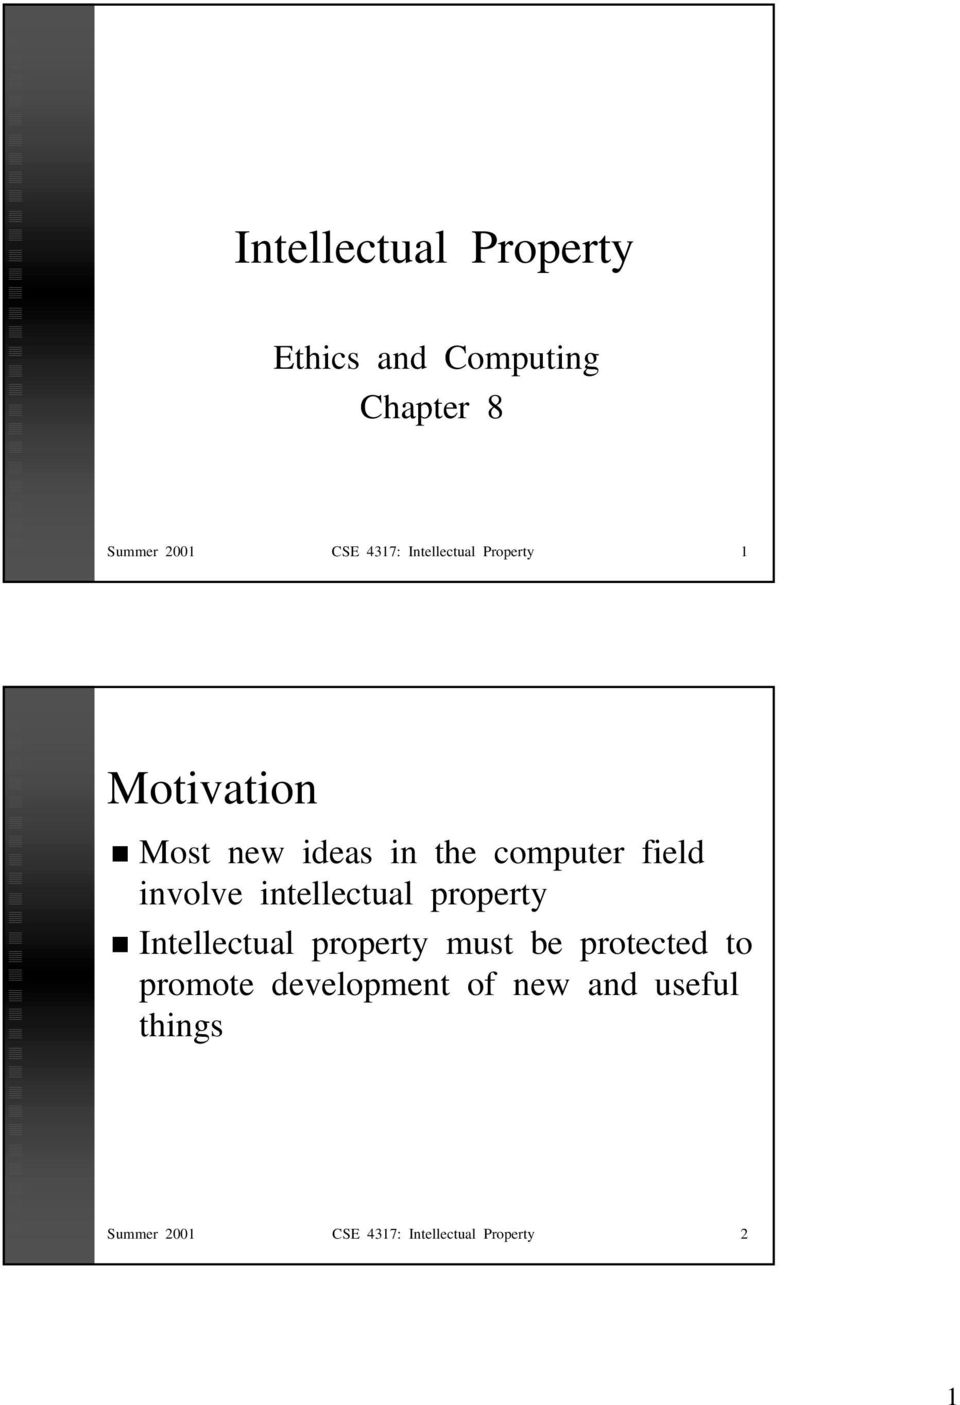 involve intellectual property Intellectual property must be protected to